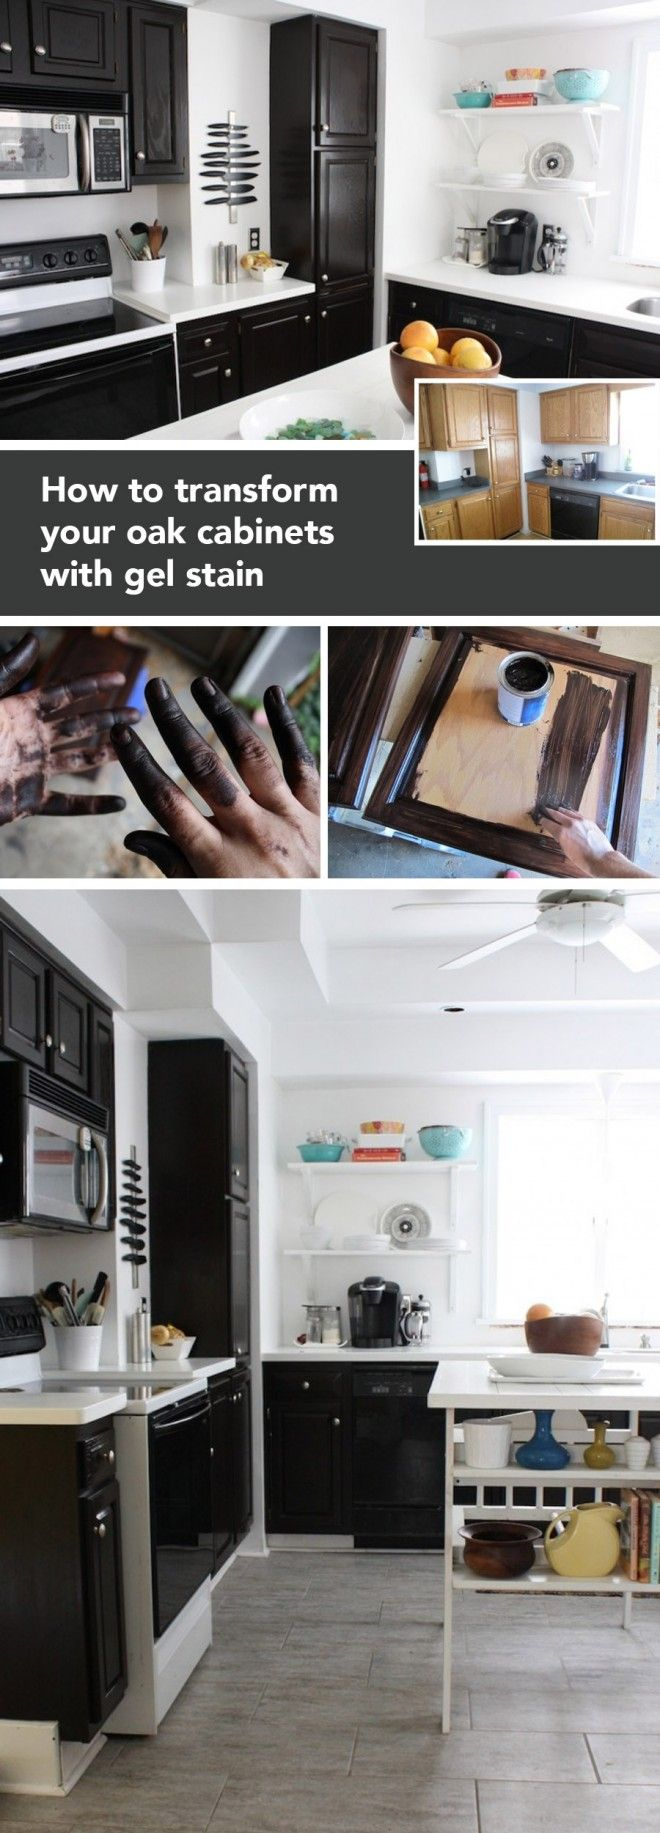 best 20 gel stain cabinets ideas on pinterest stain kitchen makeover your kitchen with this honest tutorial on how to use gel stain gel stain cabinetsoak